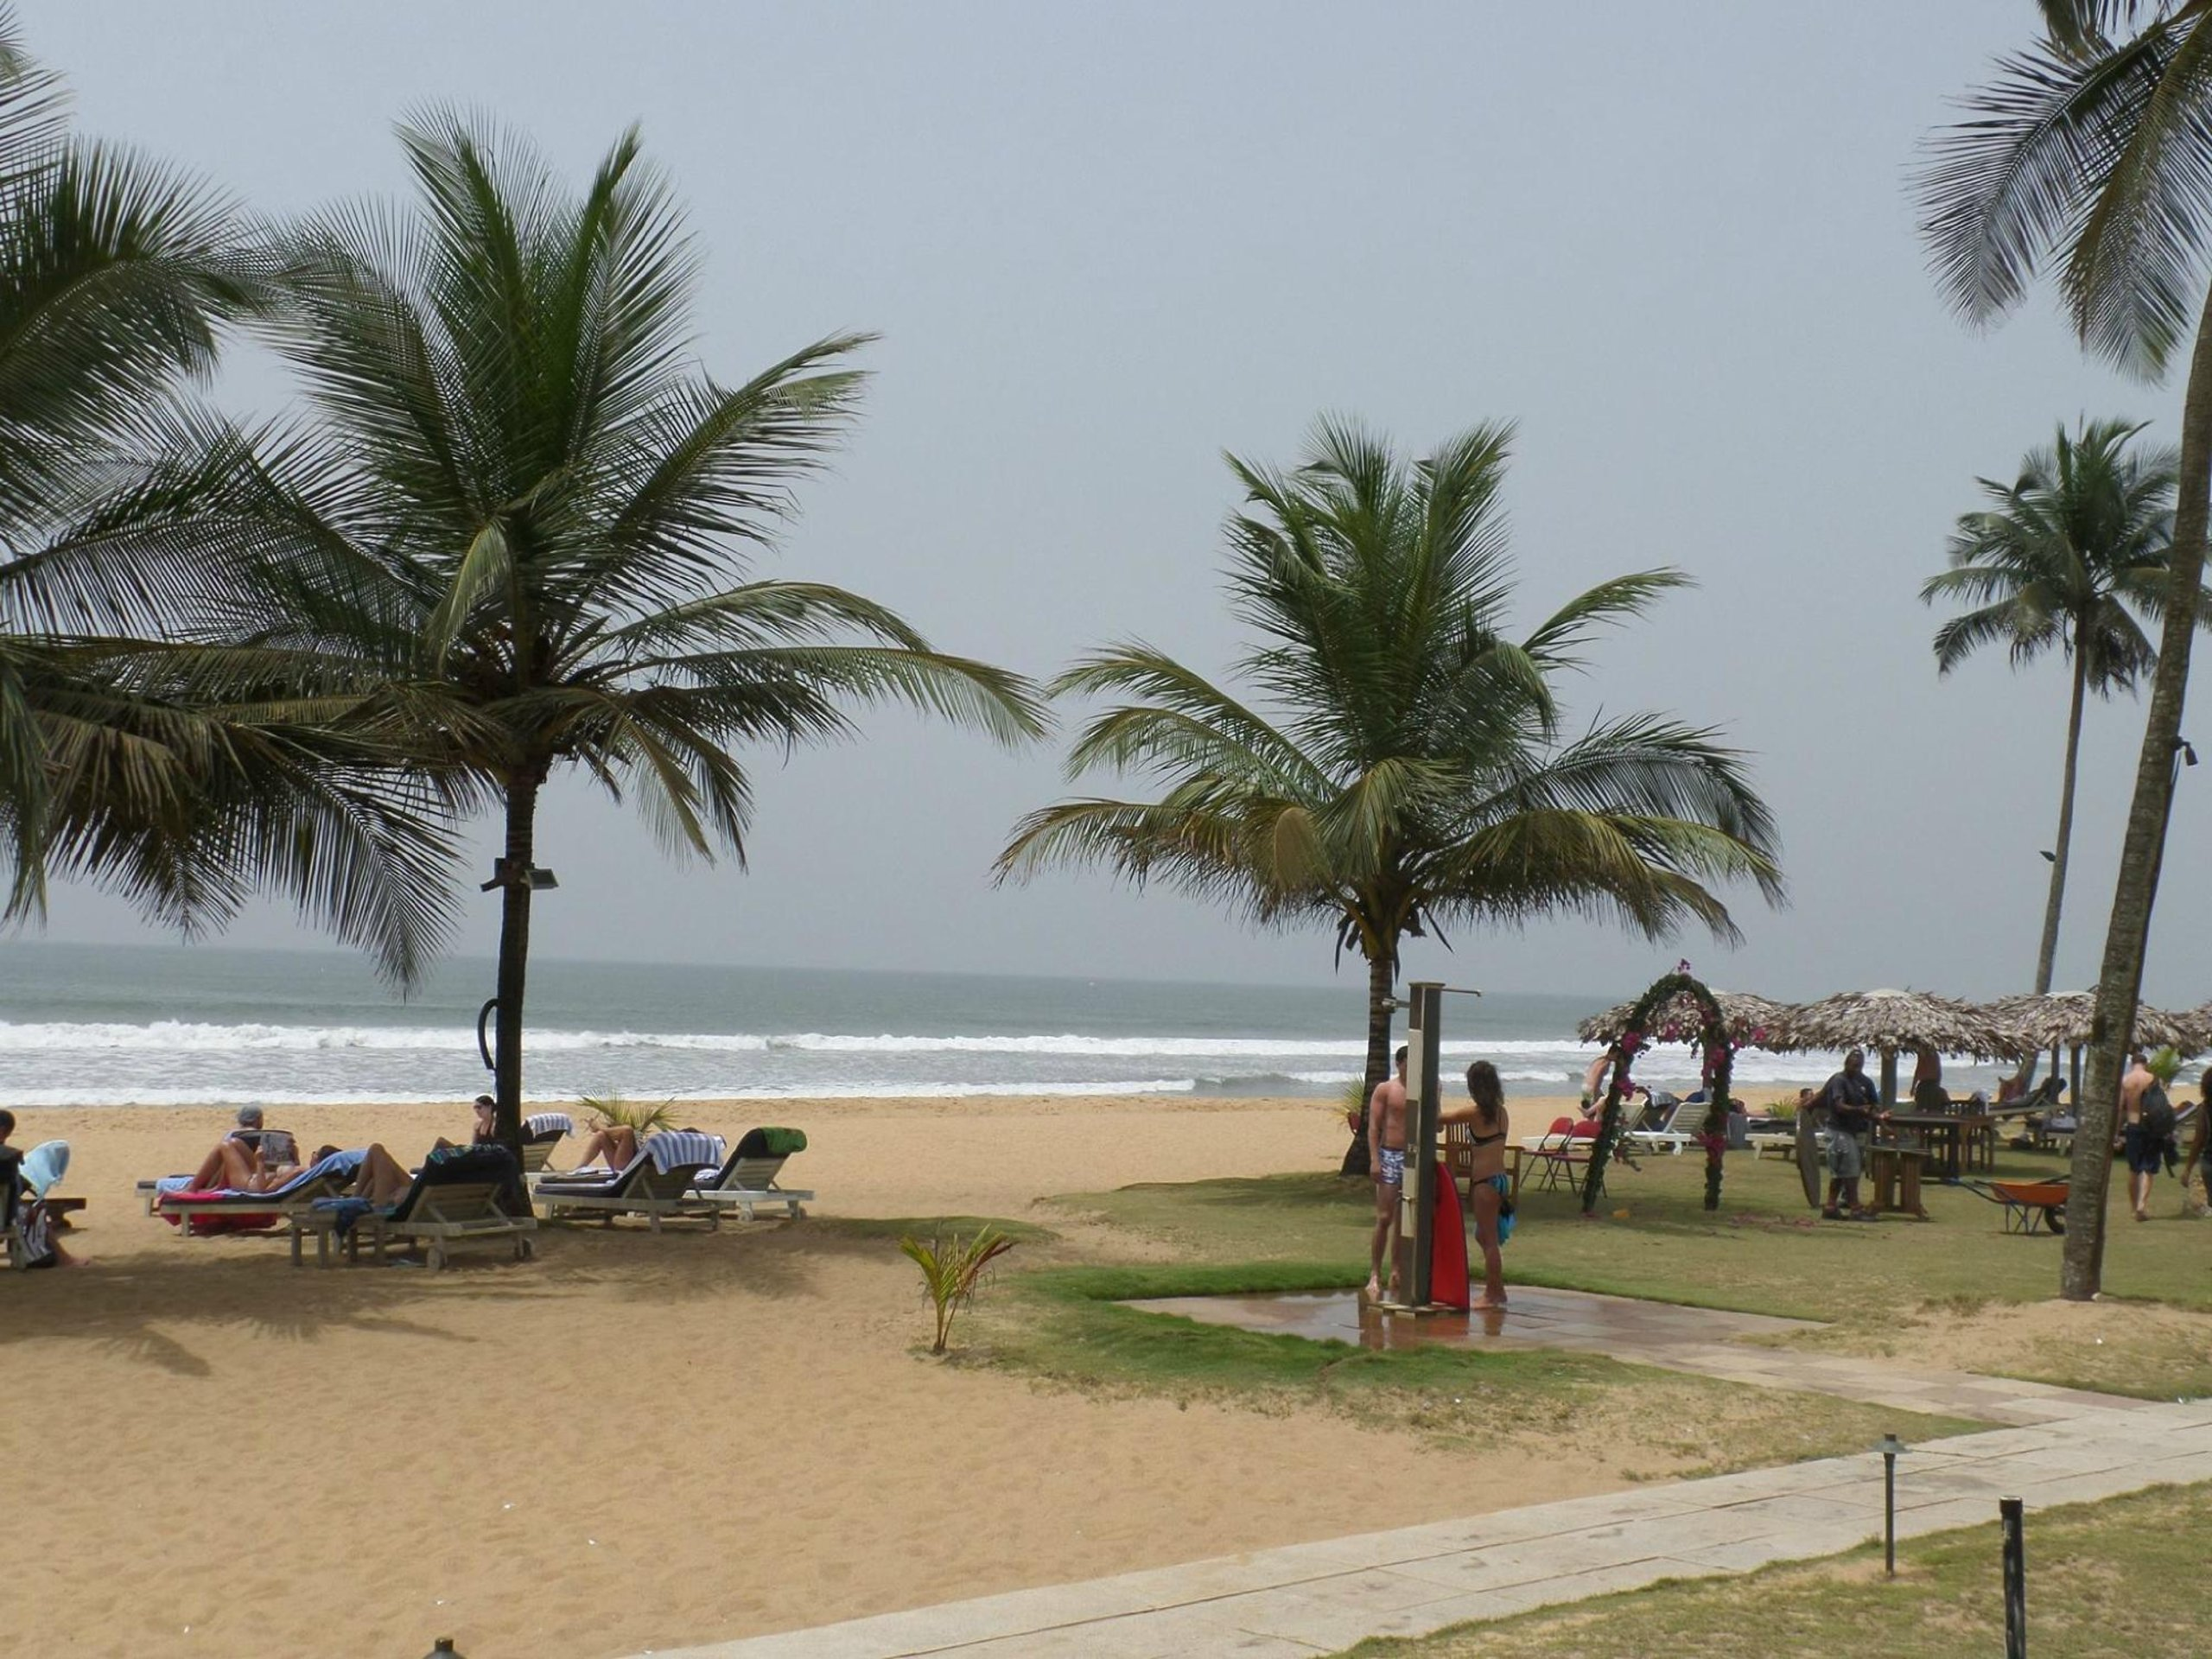 THE 10 BEST Things to Do in Liberia - 2020 (with Photos) - Tripadvisor